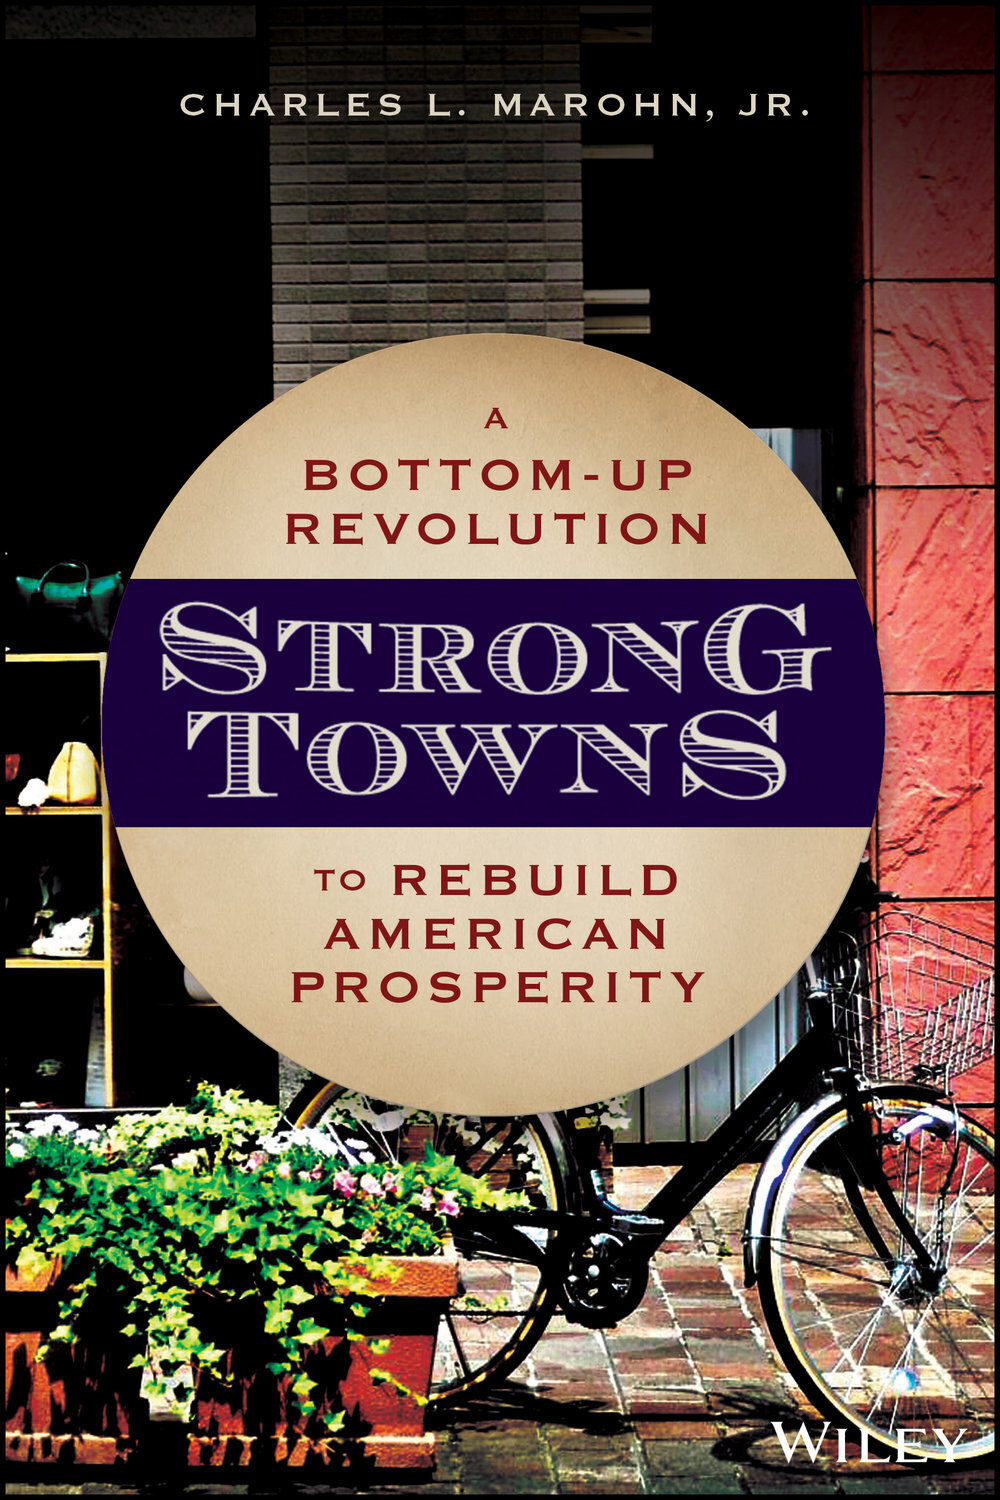 Strong+Towns+cover+HI+RES.jpg